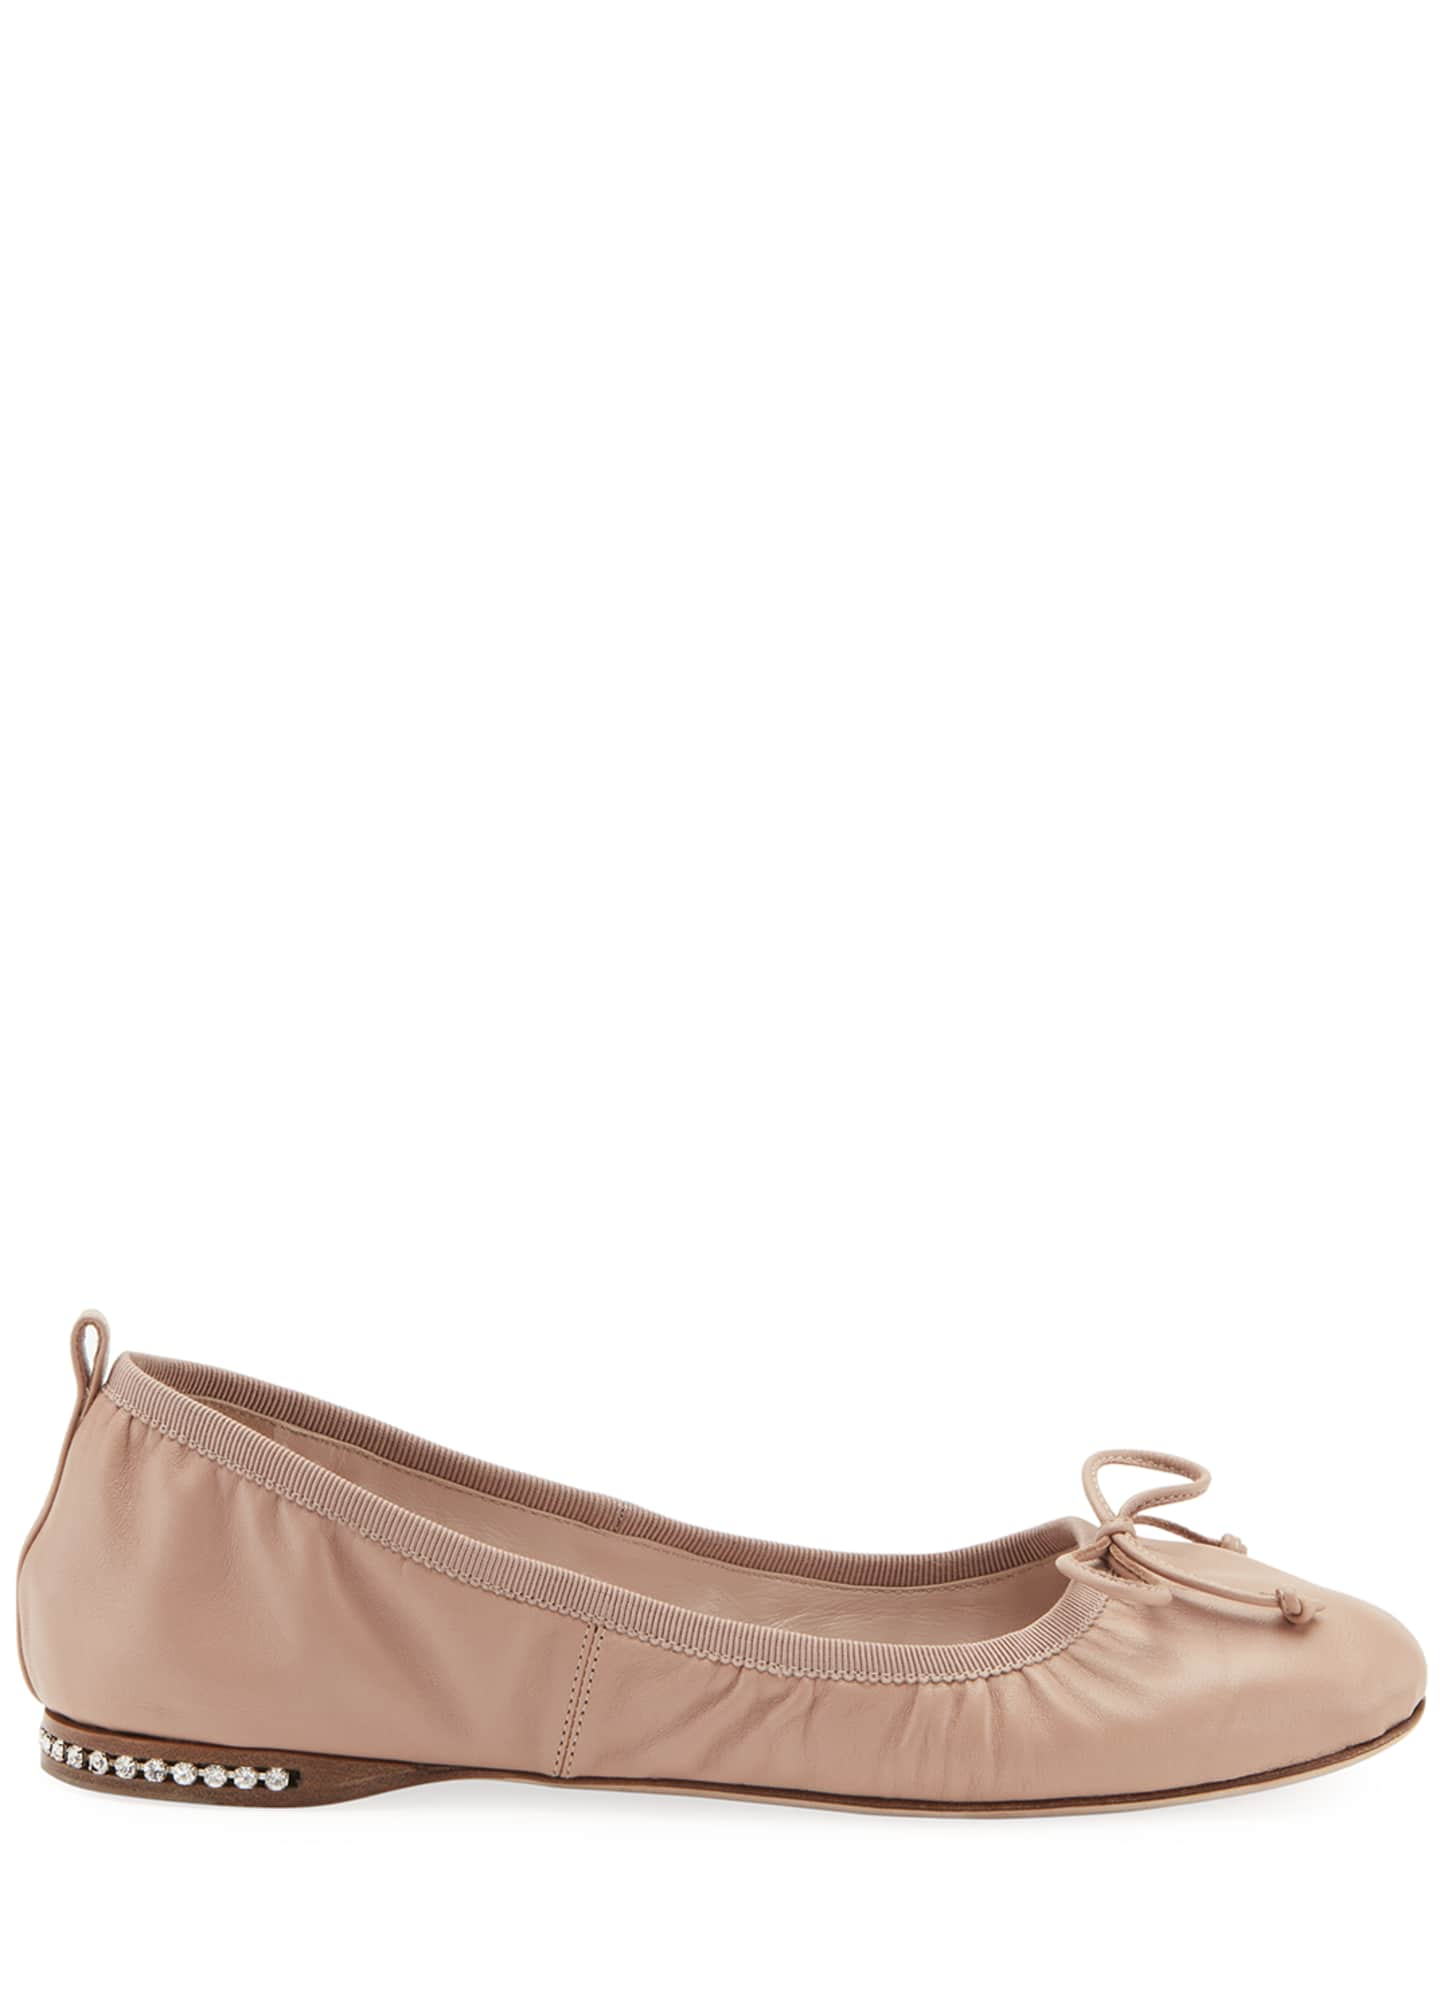 Image 2 of 2: Flat Leather Ballet Flats with Jeweled Heel